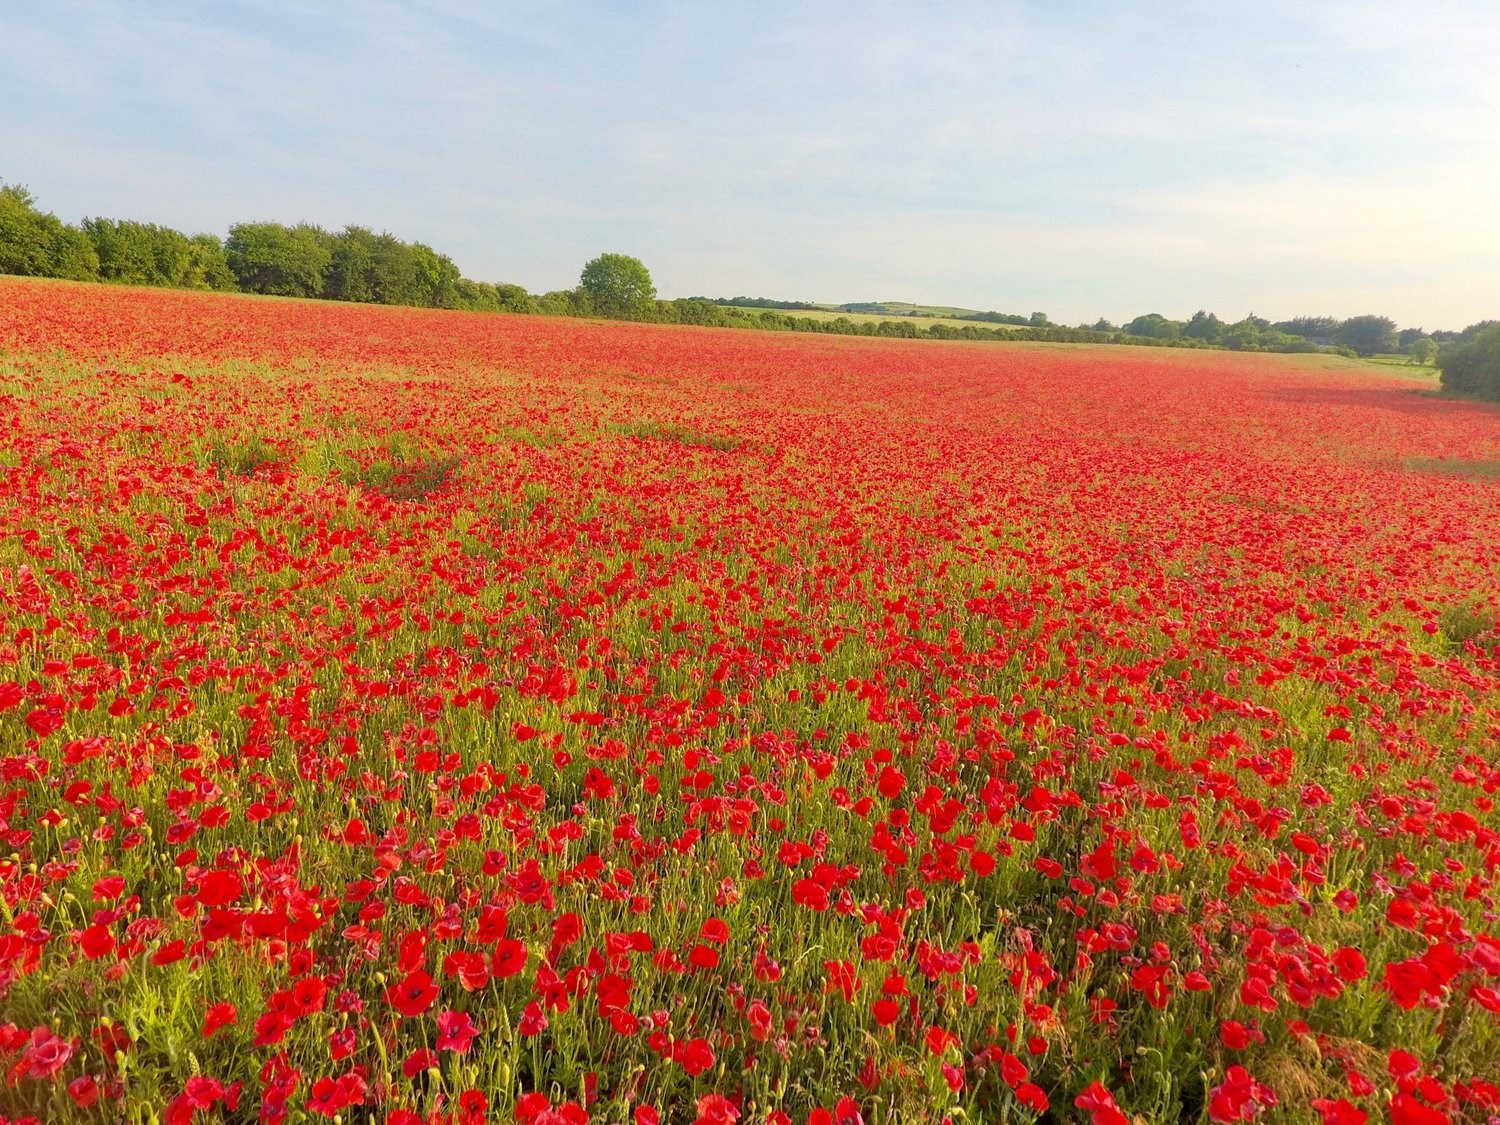 poppies-field-helensfarmimg_2253.jpg